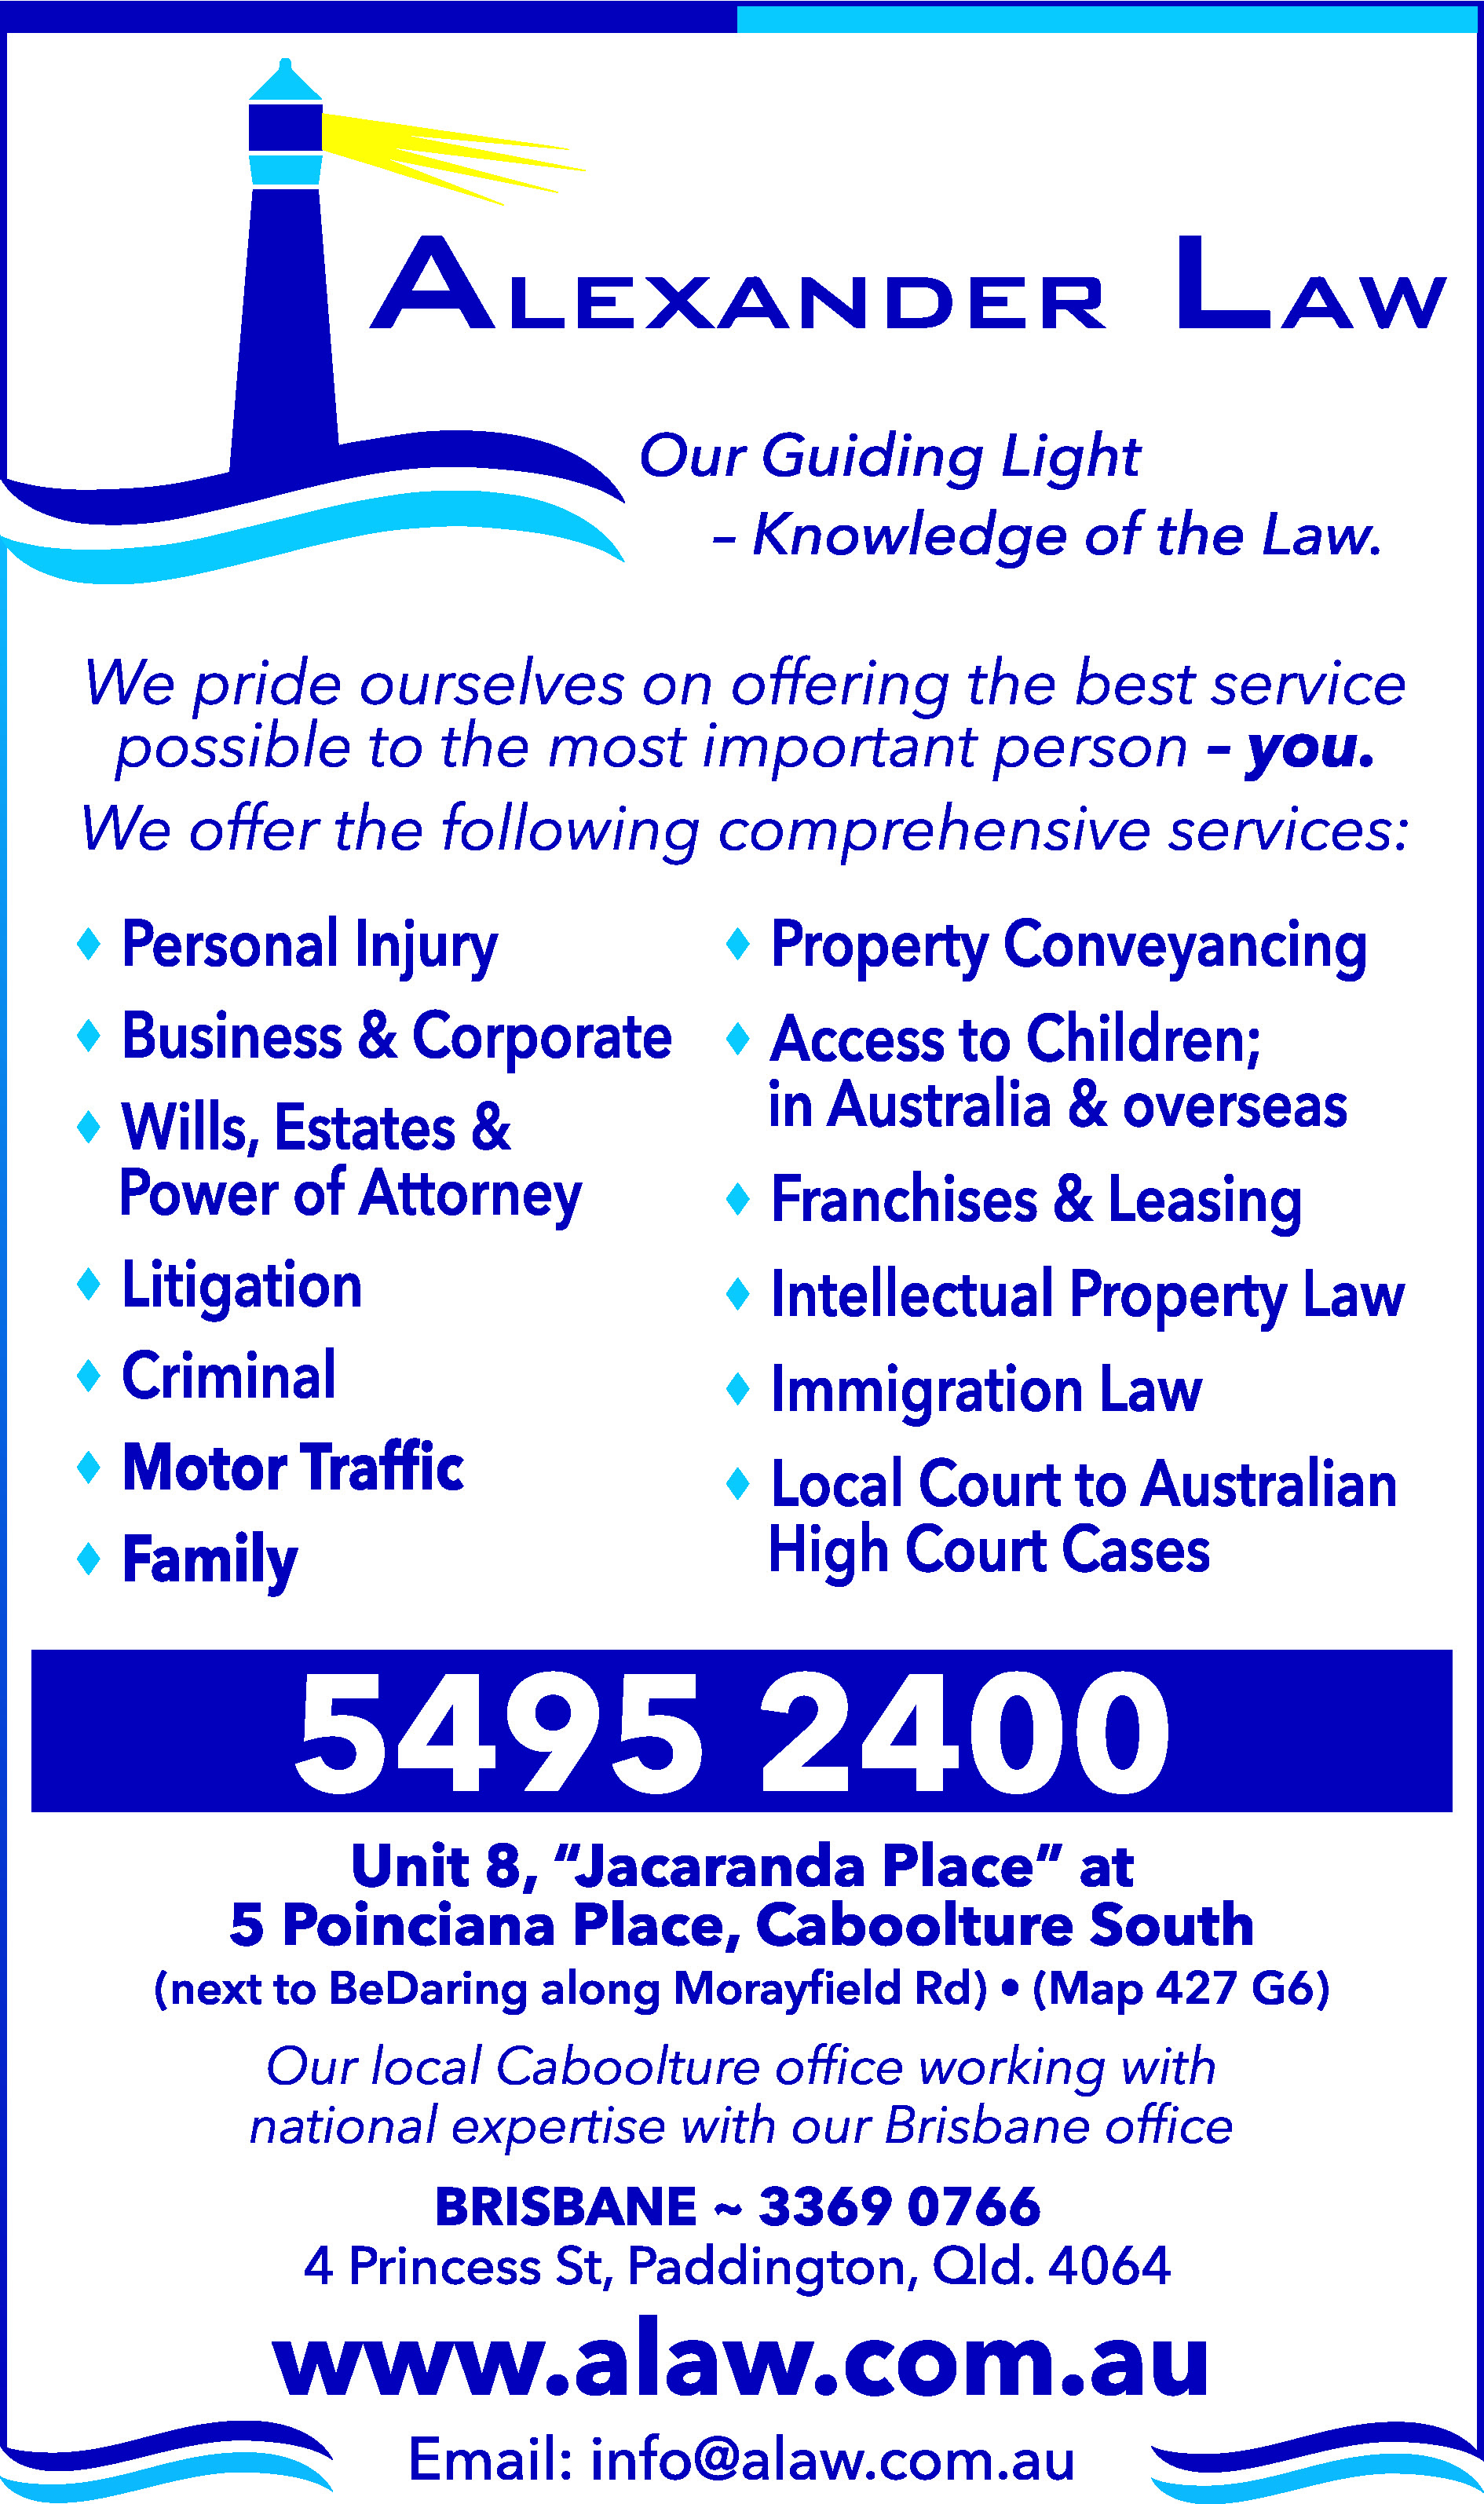 Alexander Law - Solicitors & Lawyers